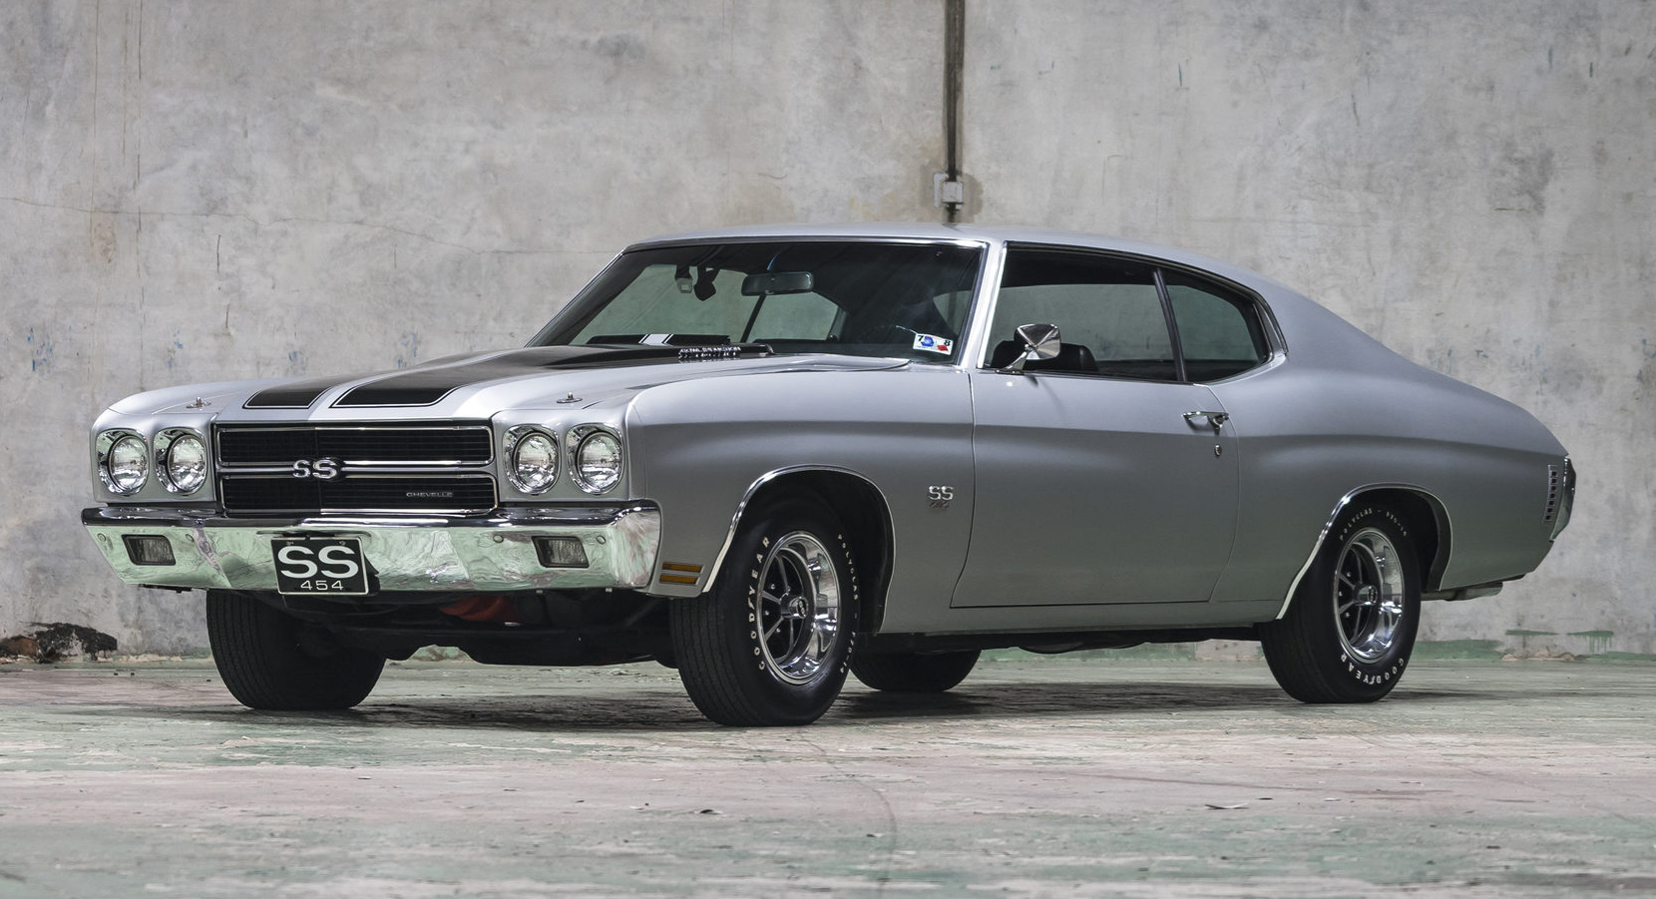 The Ultimate Muscle Car: 1970 Chevrolet Chevelle LS6